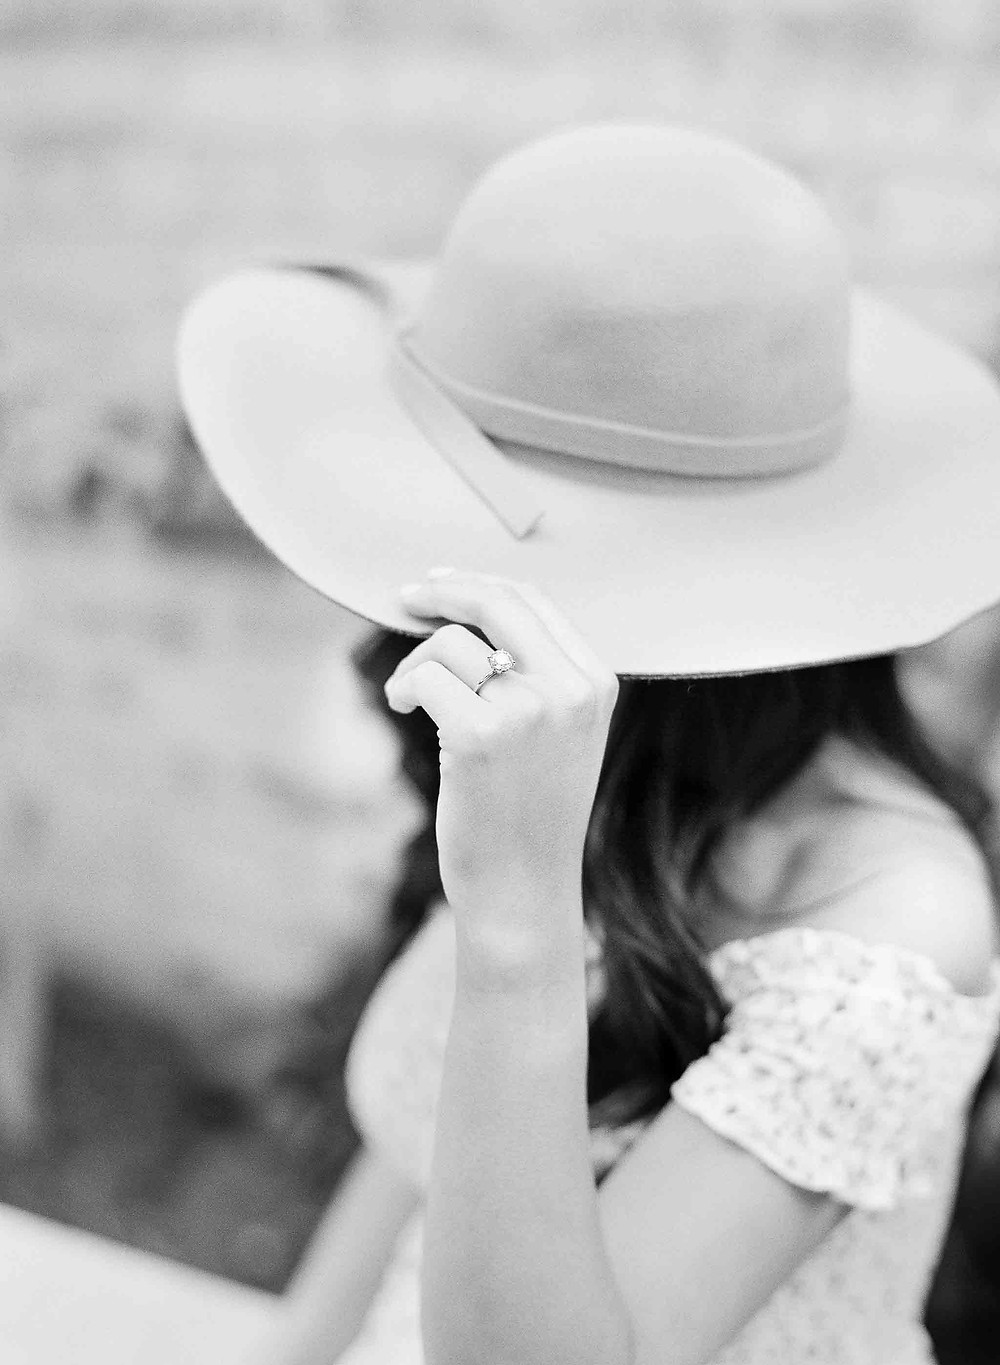 Woman touching brim of hat with diamond engagement ring